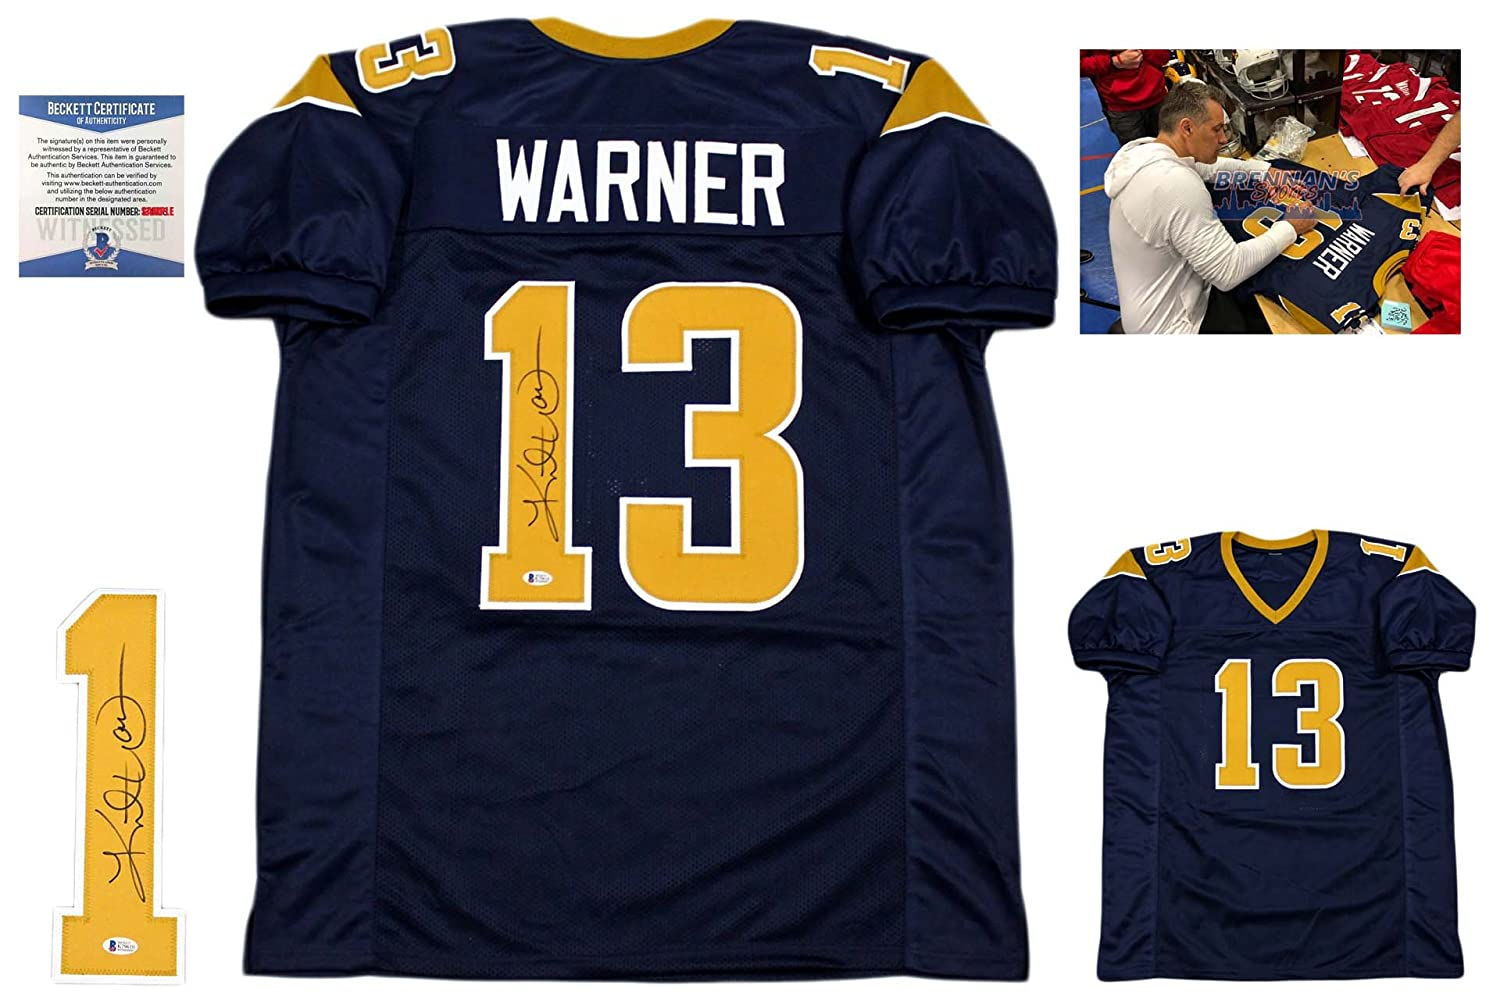 cc5db6a80 Kurt Warner Autographed Signed Jersey - Beckett Authentic - Navy at  Amazon s Sports Collectibles Store